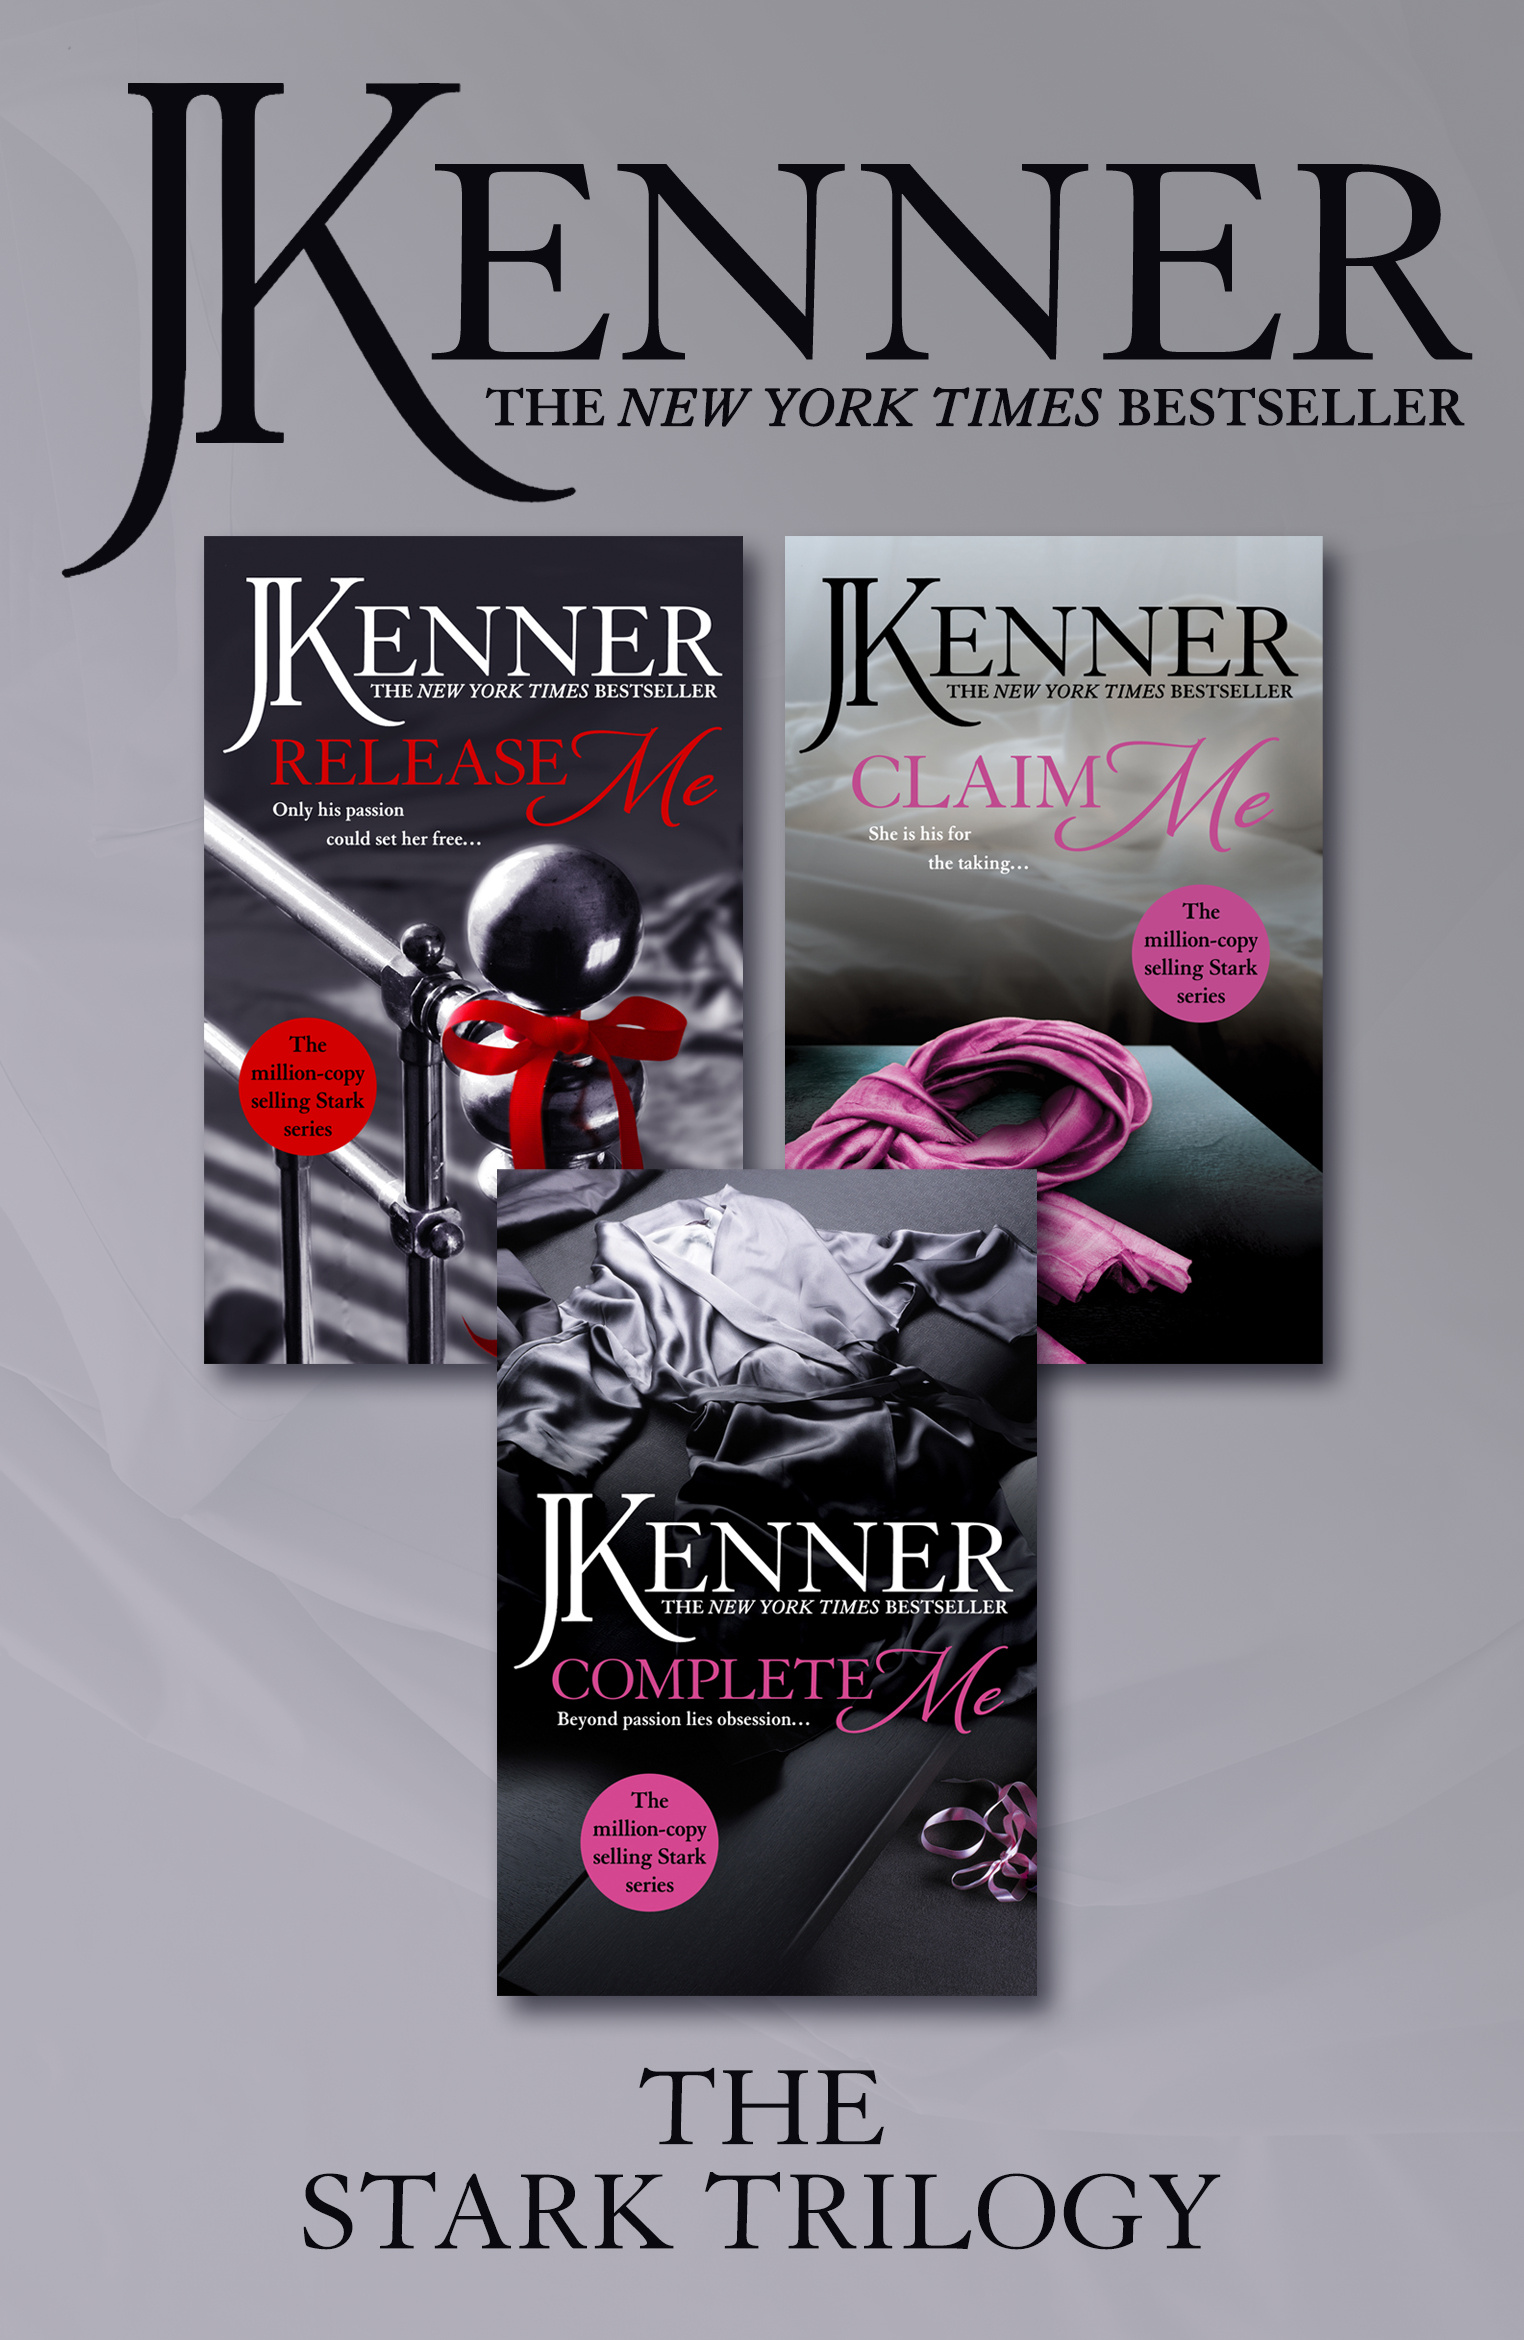 The Stark Trilogy: Release Me, Claim Me, Complete Me by J. Kenner - Books -  Hachette Australia